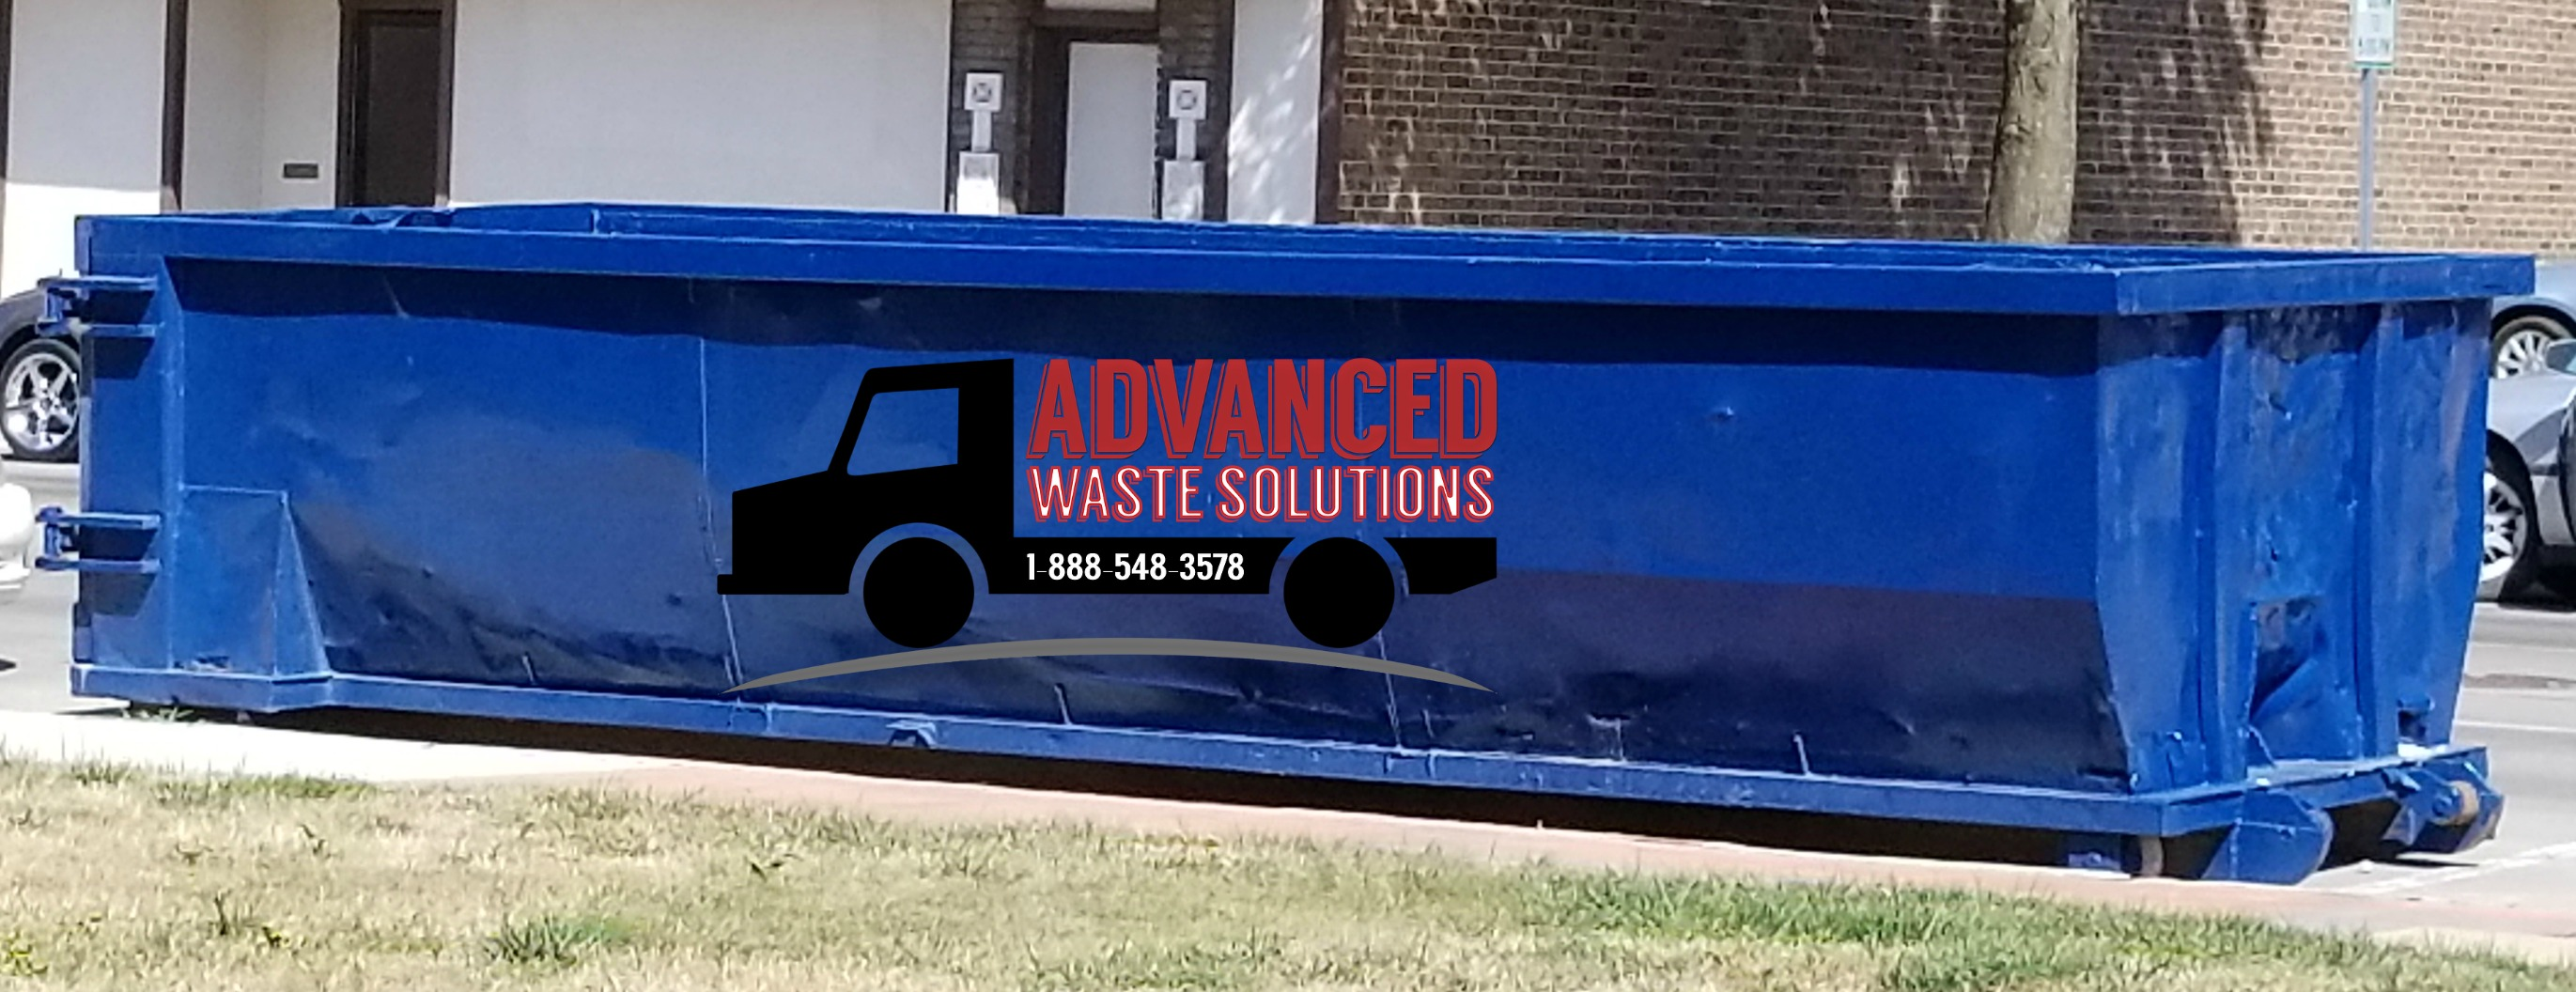 Advance Waste Solutions image 5